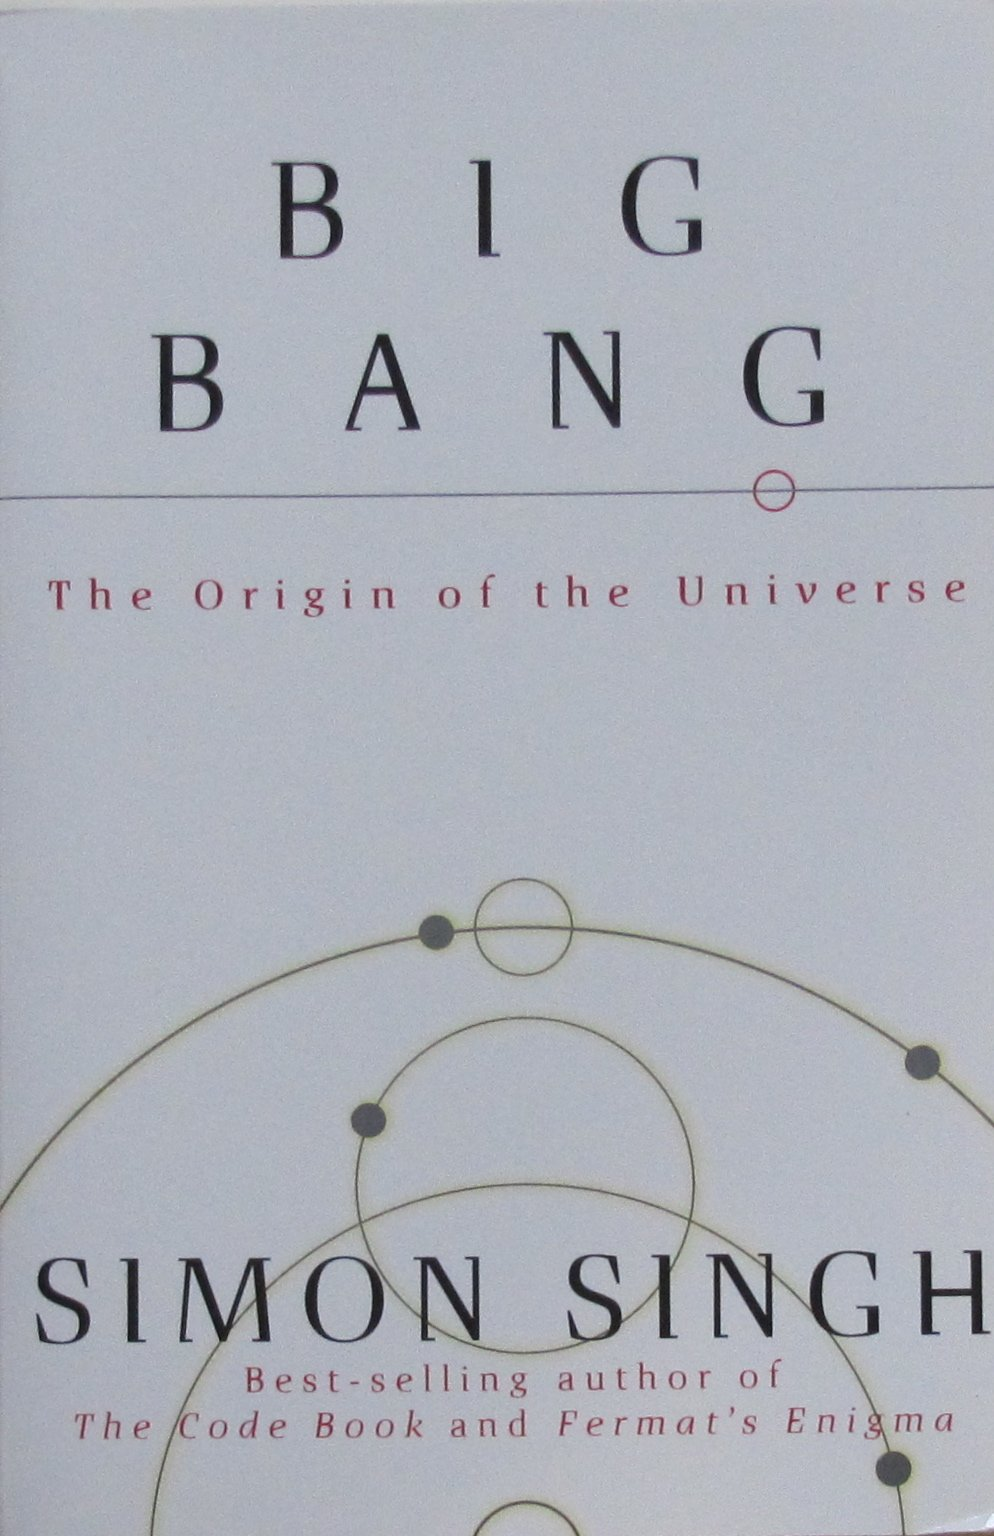 Big Bang: The Origin of the Universe, Simon Singh